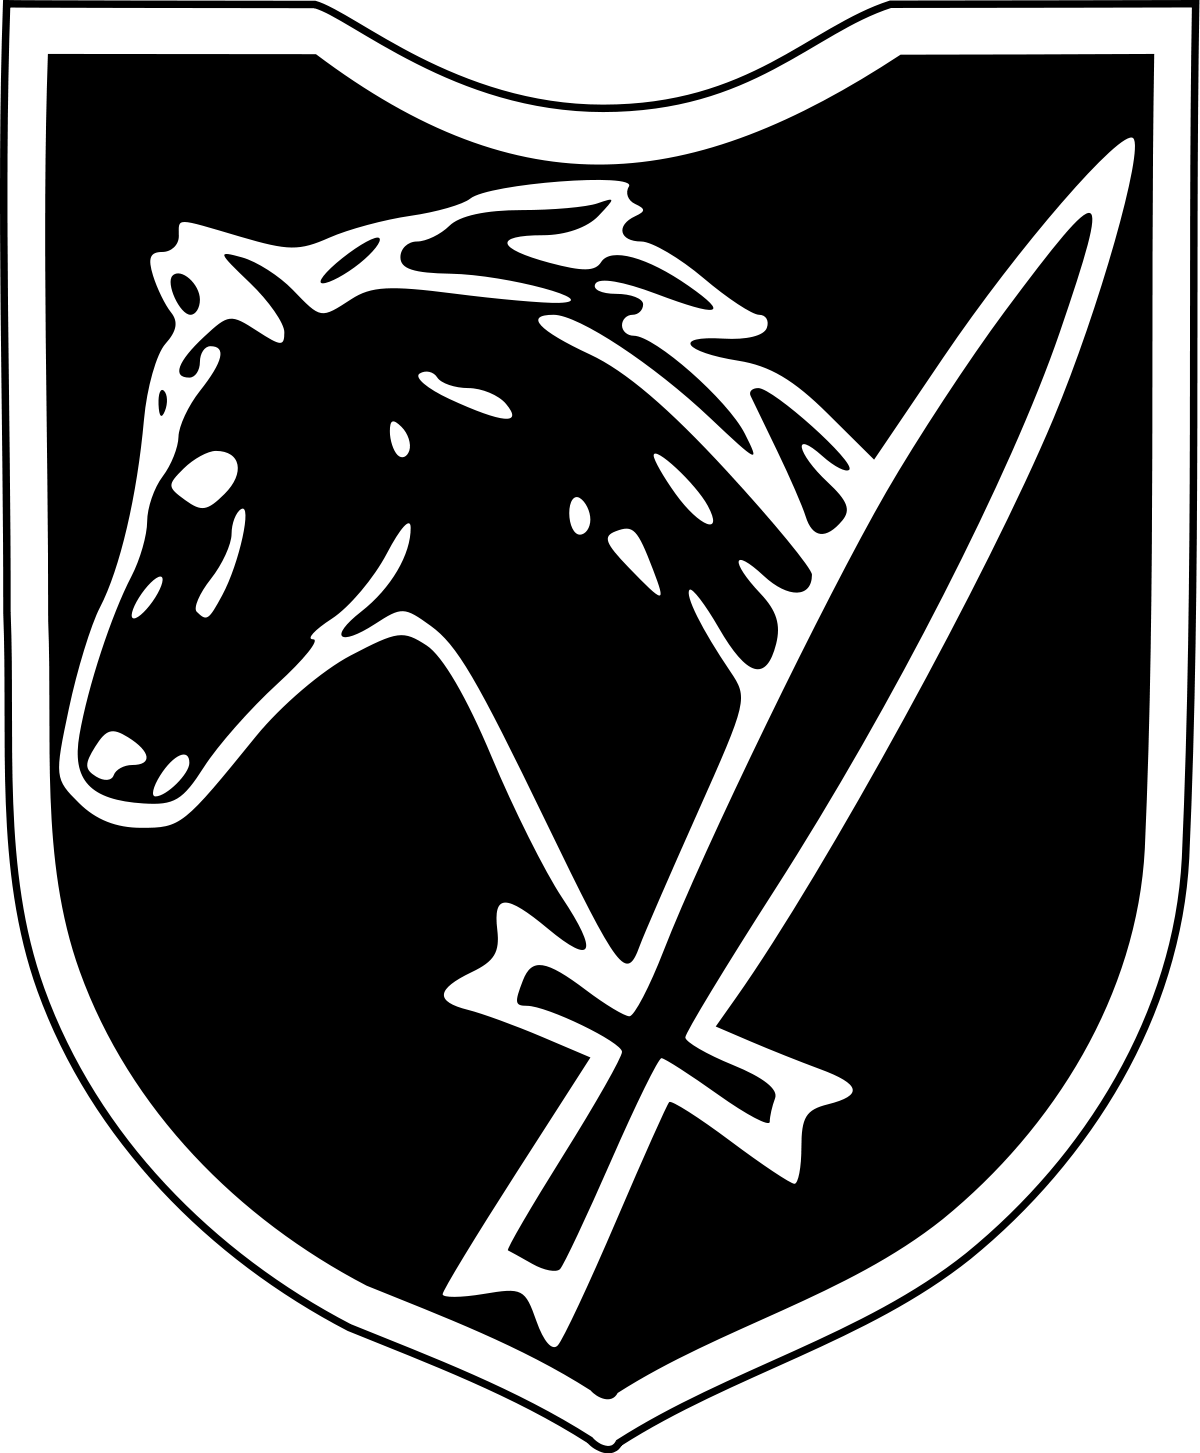 8th ss cavalry division florian geyer wikipedia